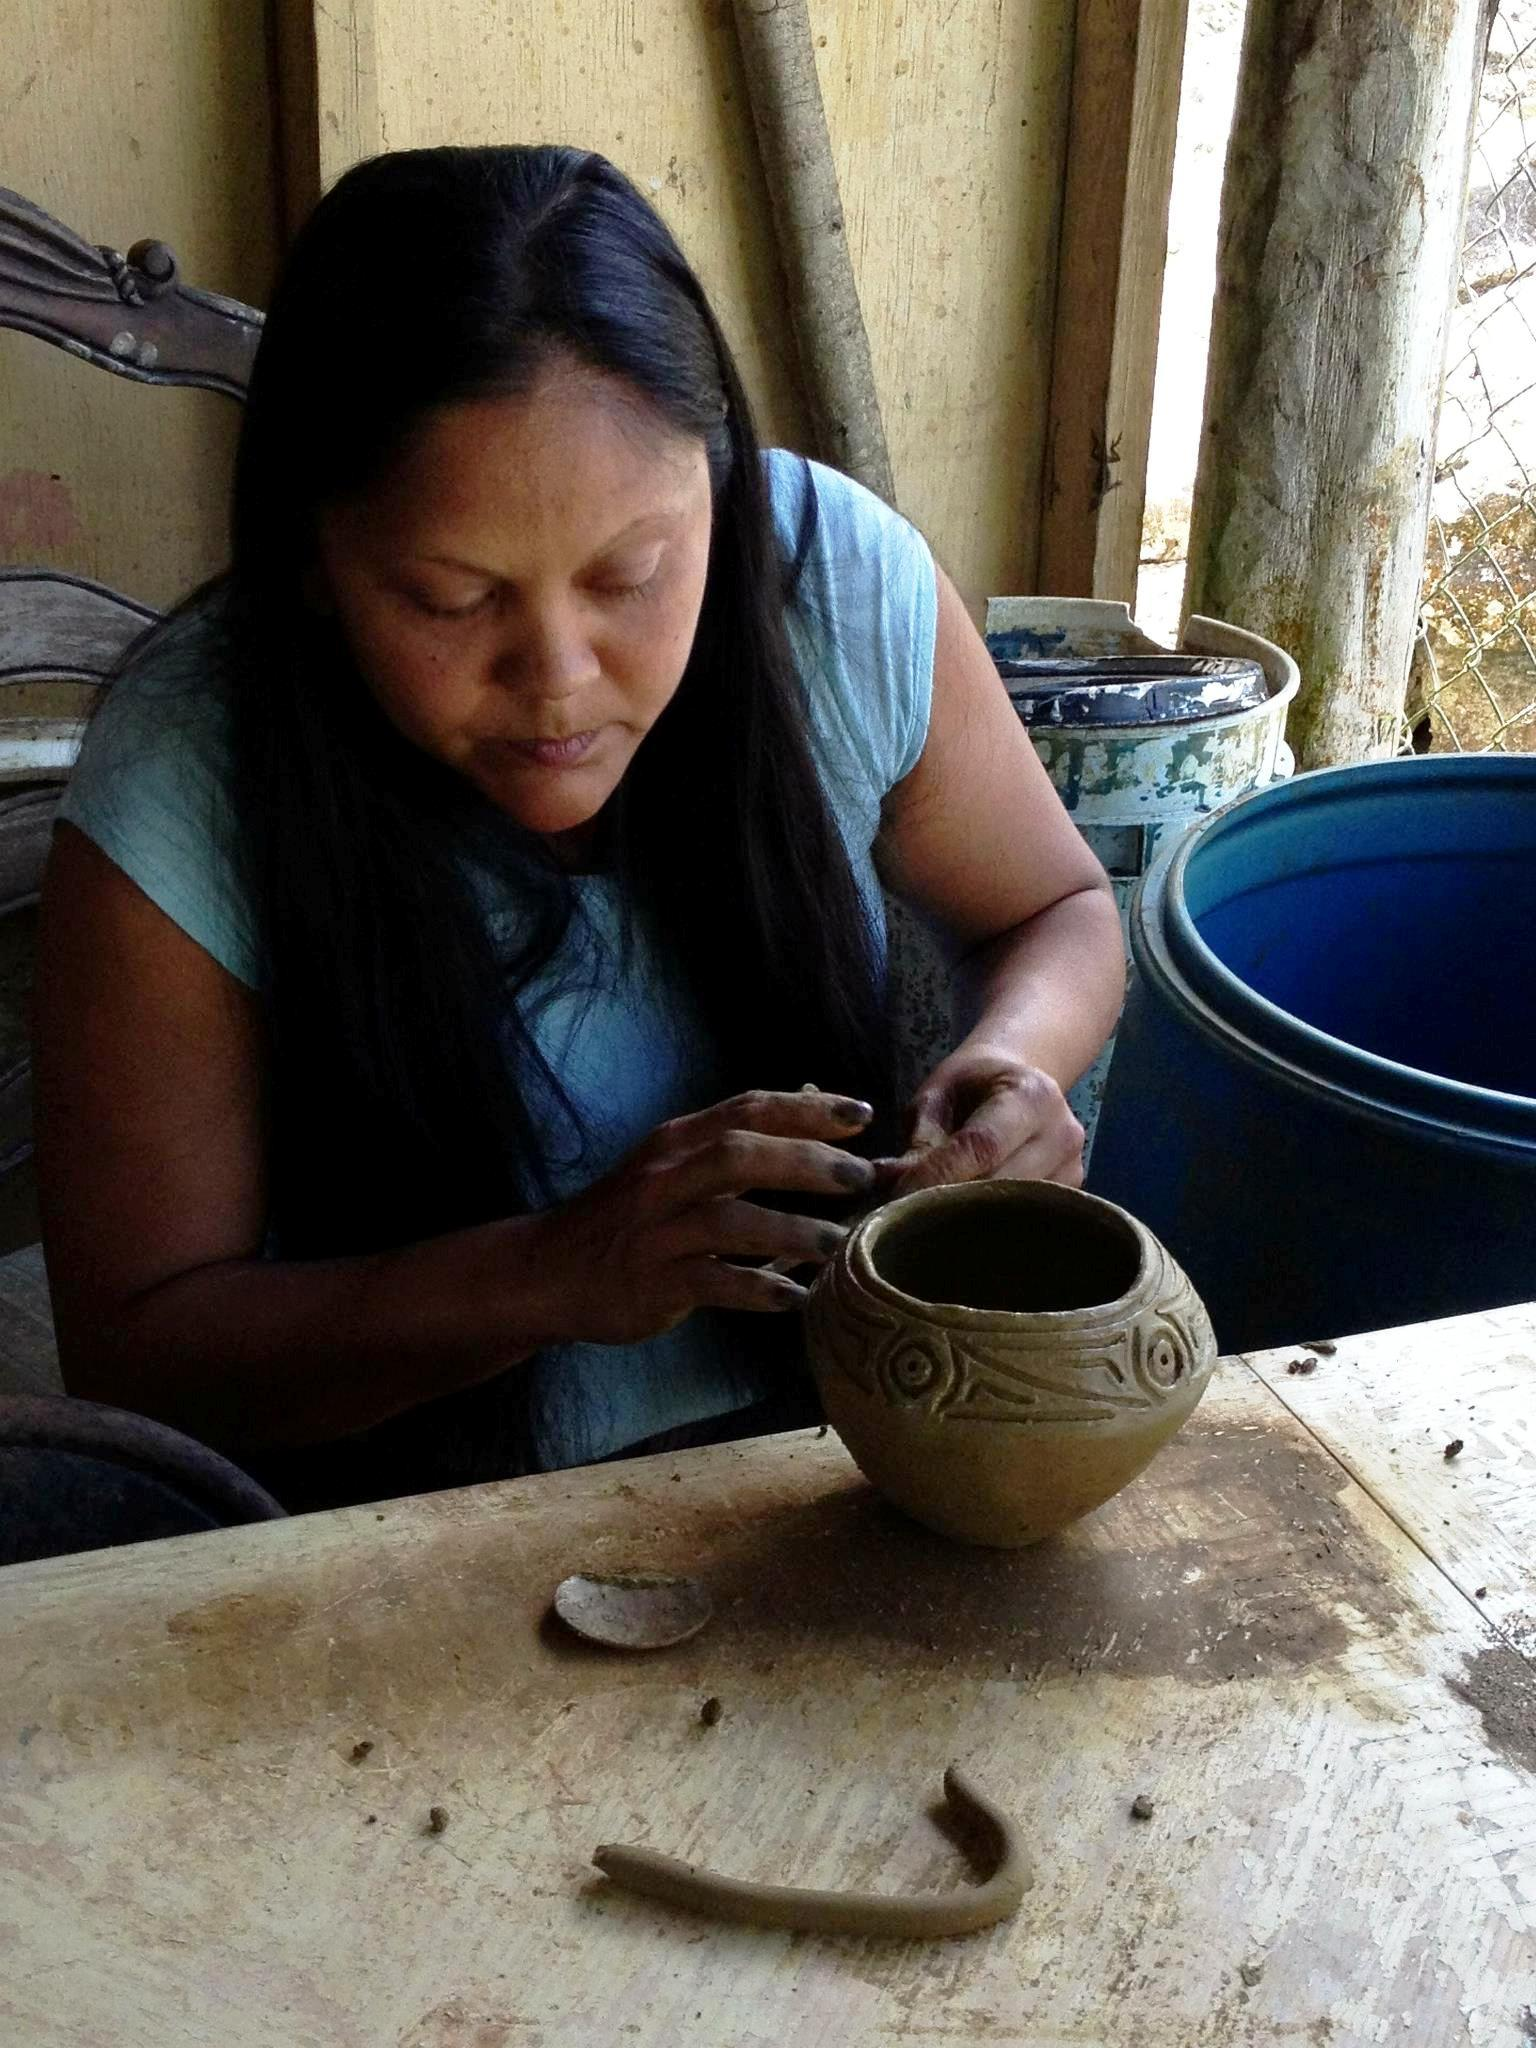 Alice Chéverez is part of a generation of Puerto Rican artisans who have revived Taíno crafts like pottery based on archaeological findings. Photo Credit: Smithsonian Institution.